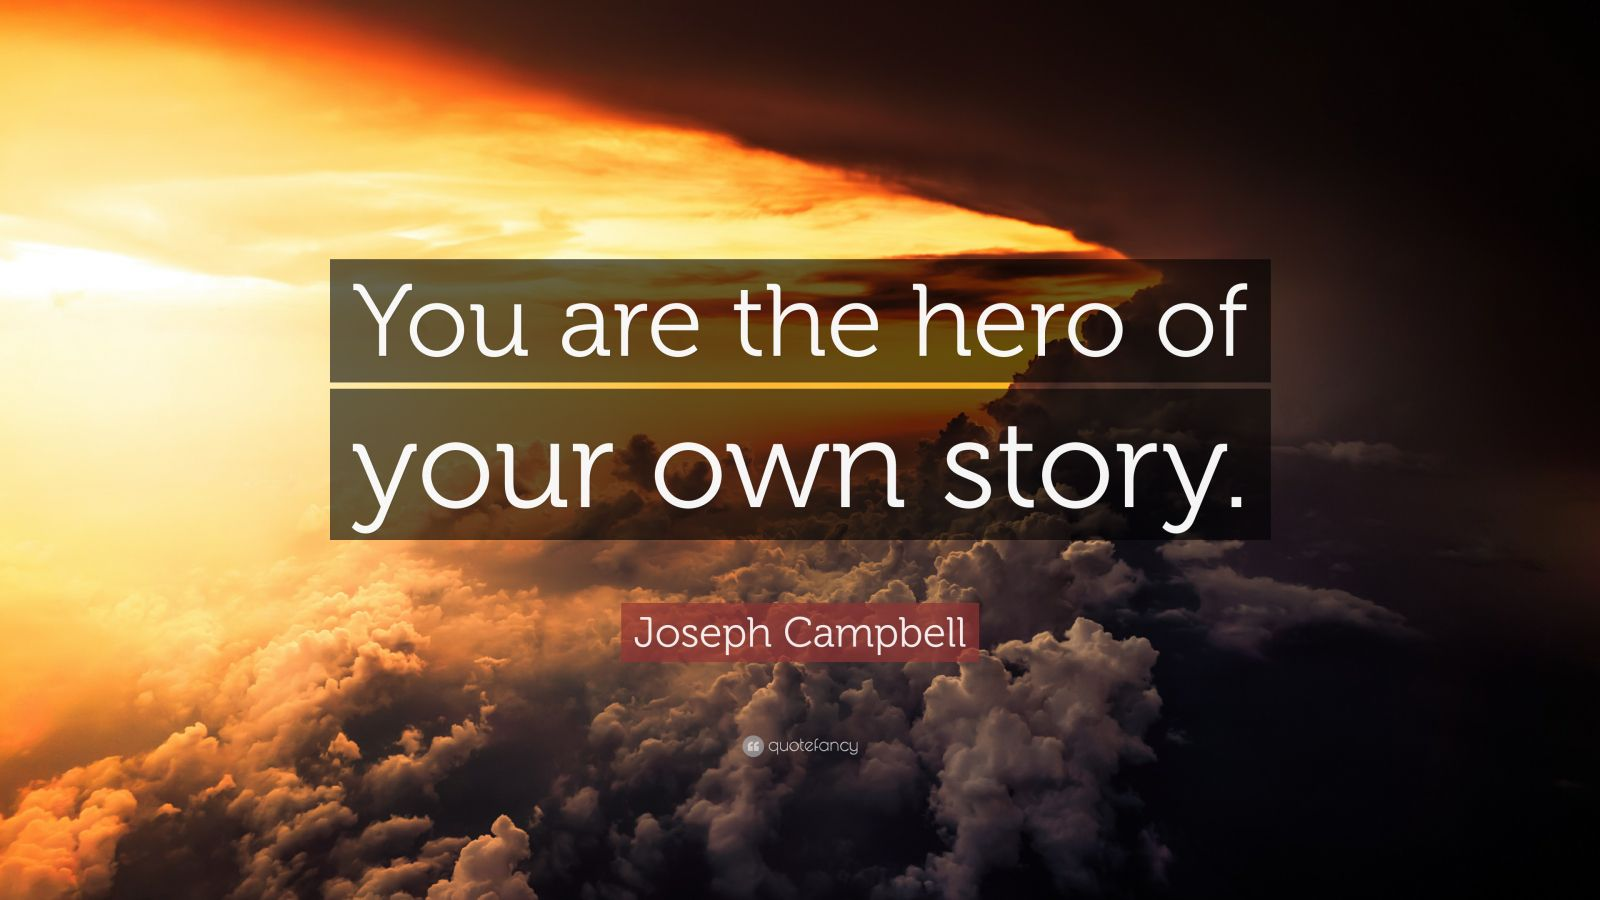 Mother Teresa Quotes Wallpapers Joseph Campbell Quote You Are The Hero Of Your Own Story